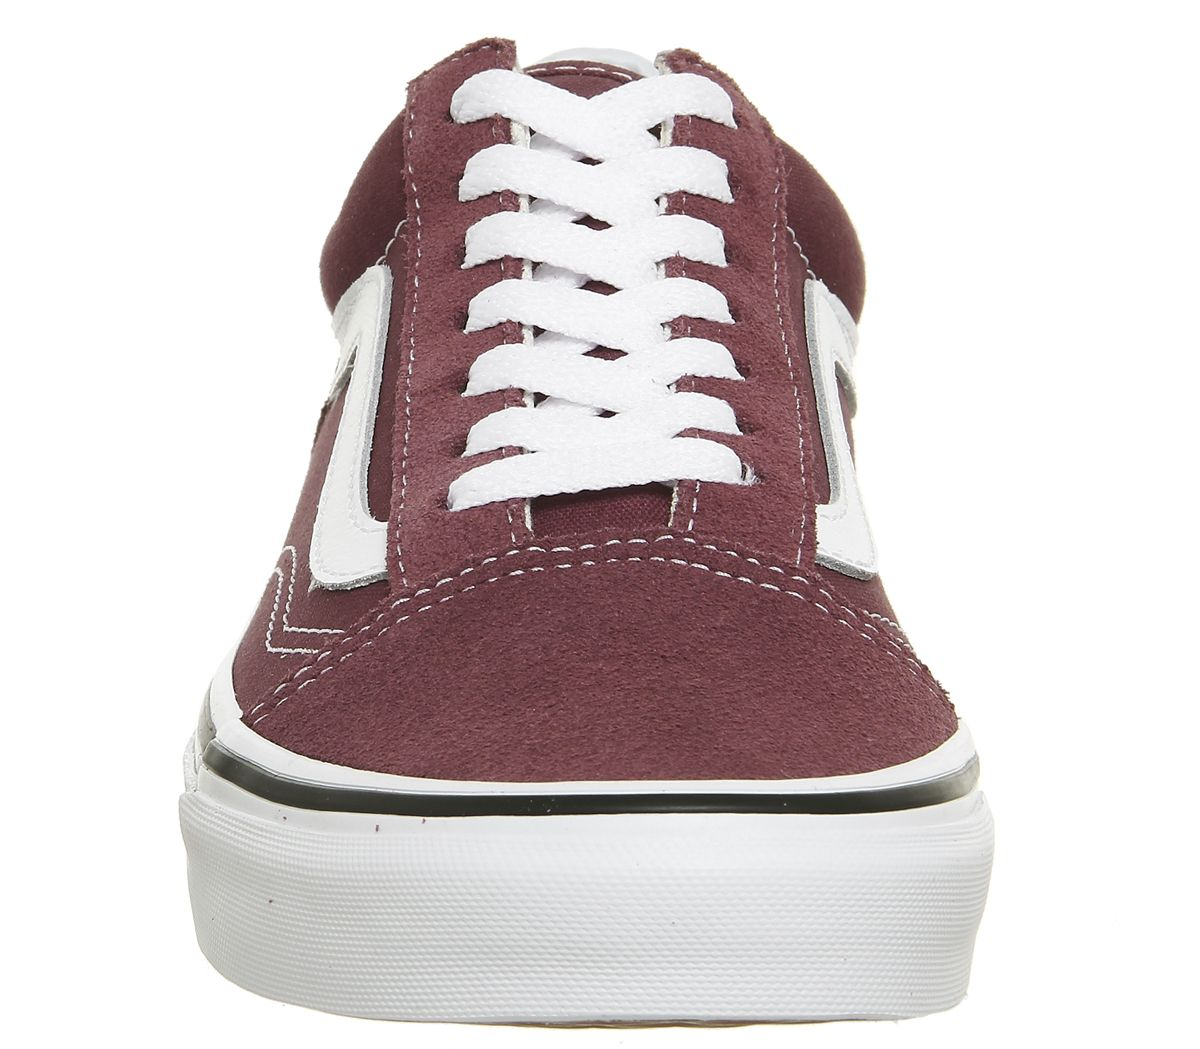 7c72fb22f31c Vans Old Skool Trainers Apple Butter True White - Unisex Sports